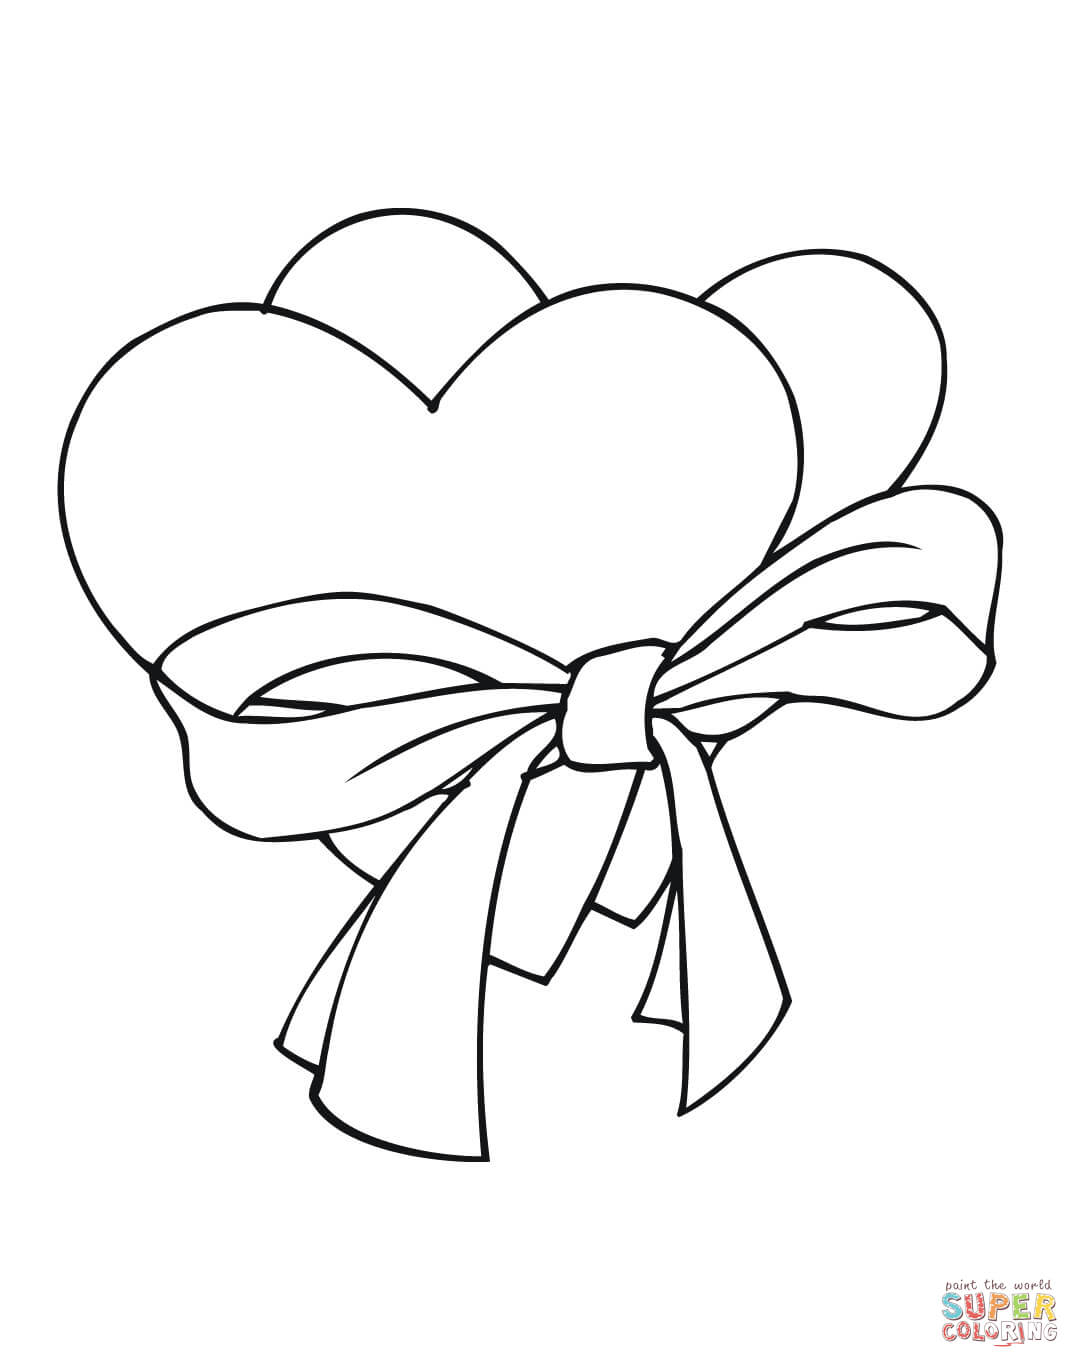 1080x1368 Heart Coloring Pages Free Printable Pictures